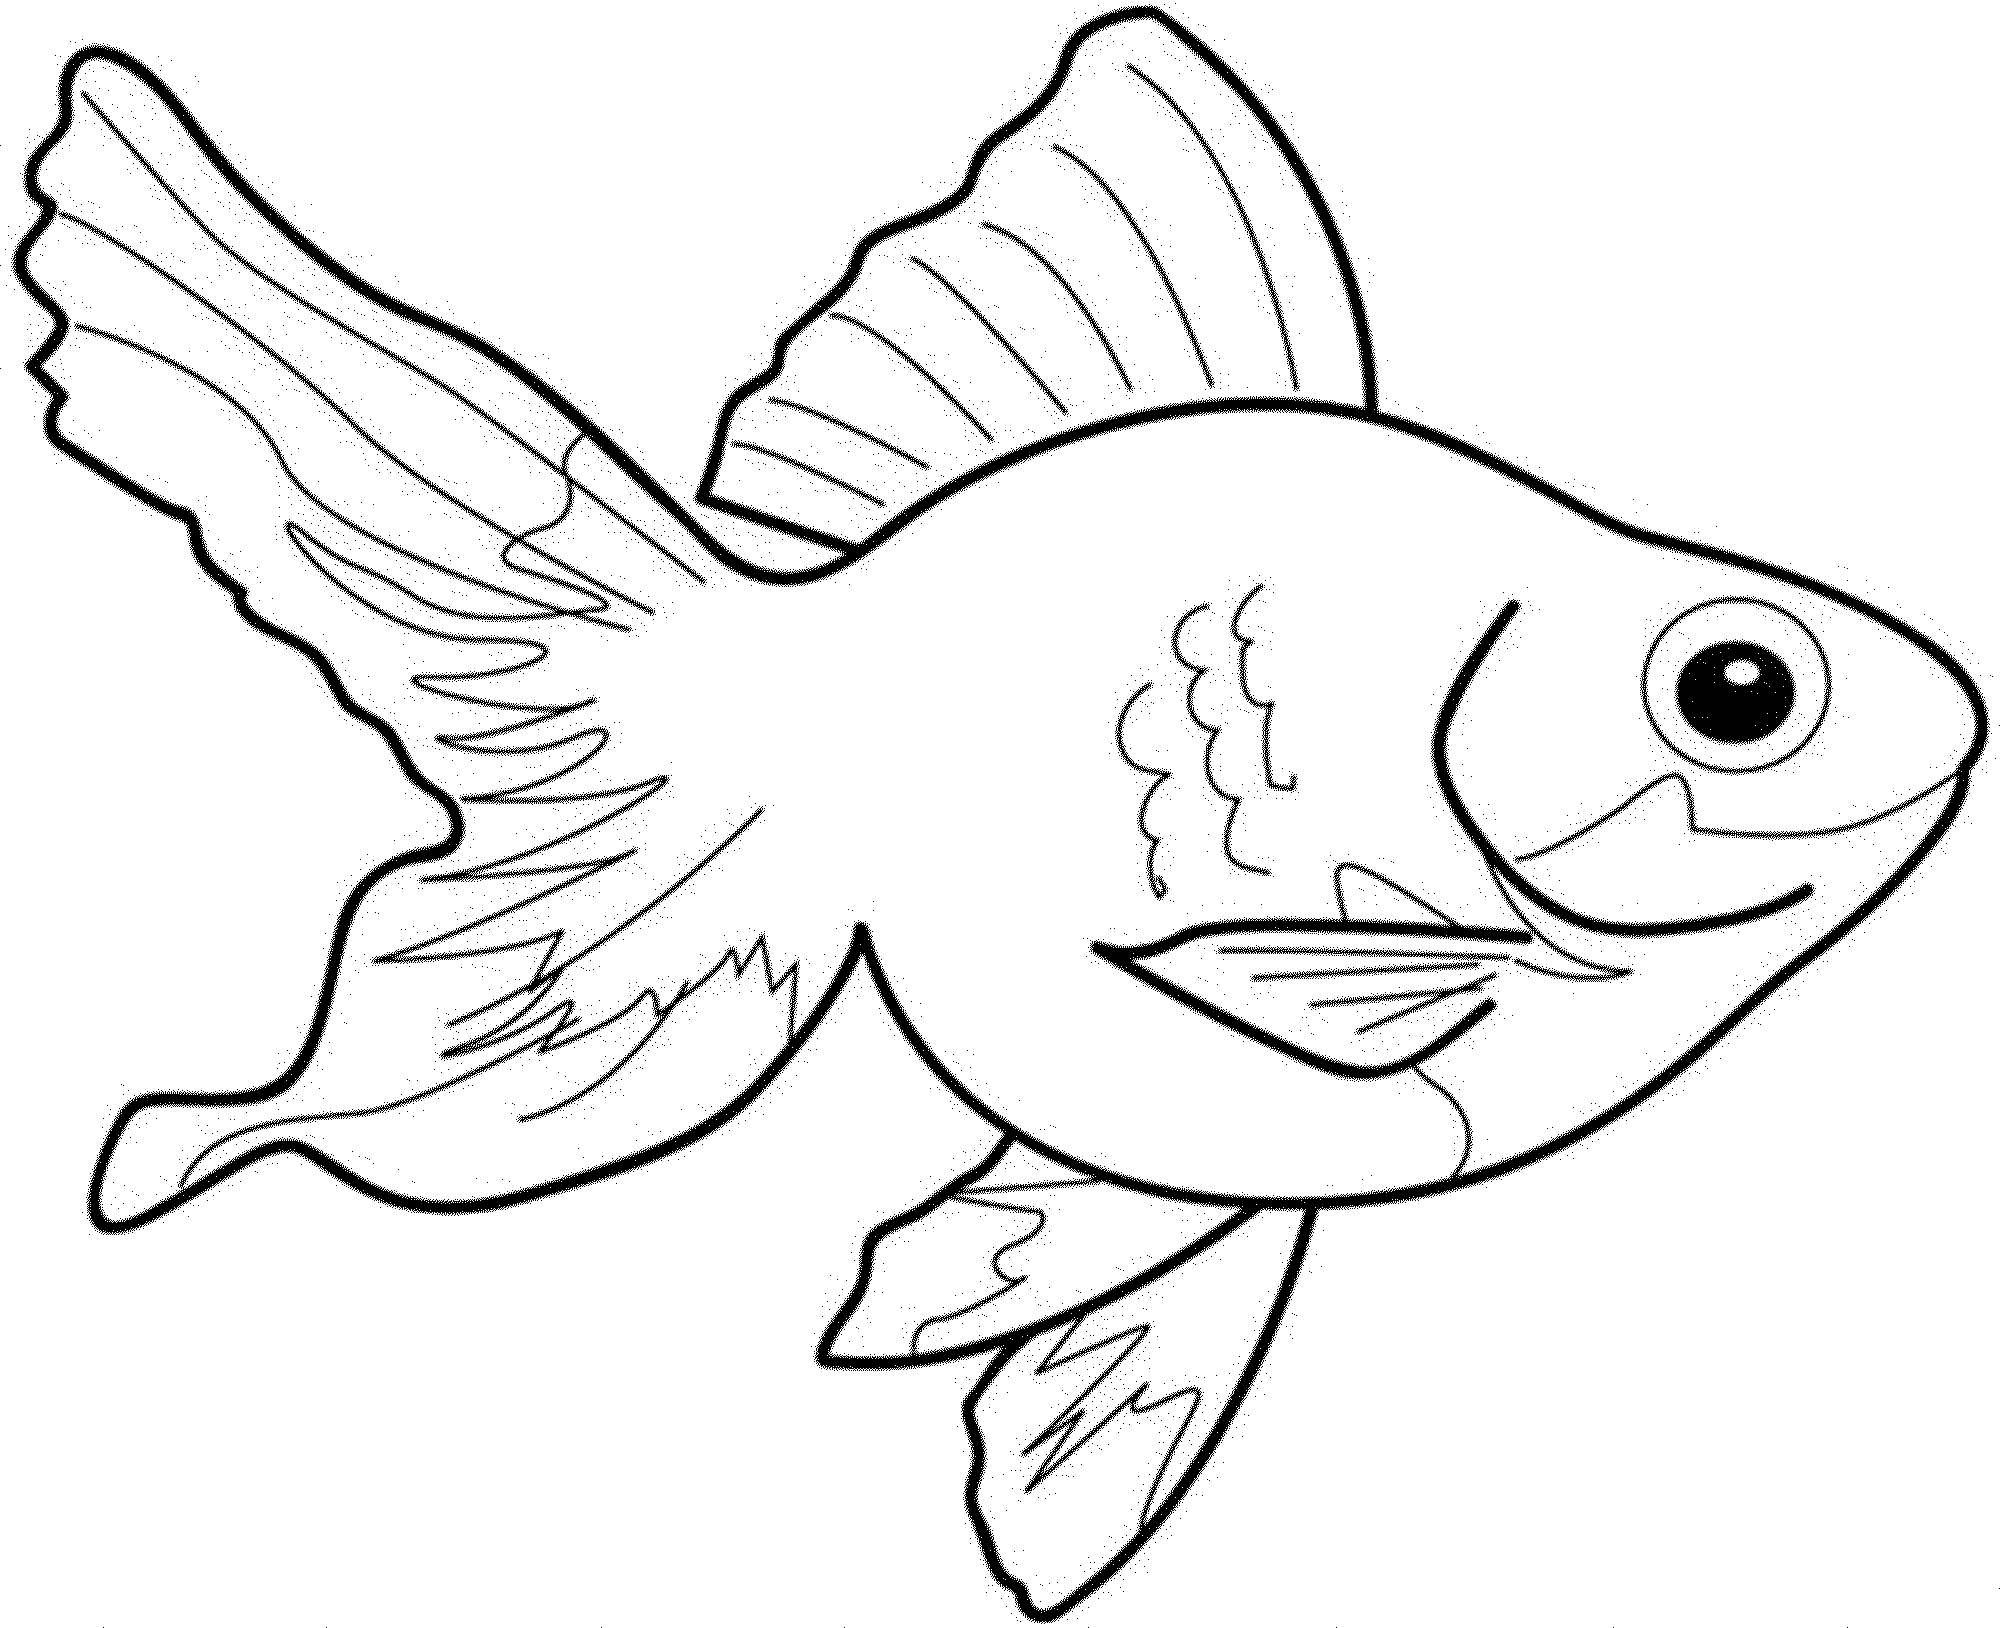 pictures of fish coloring pages real fish coloring pages at getdrawings free download coloring pictures of pages fish